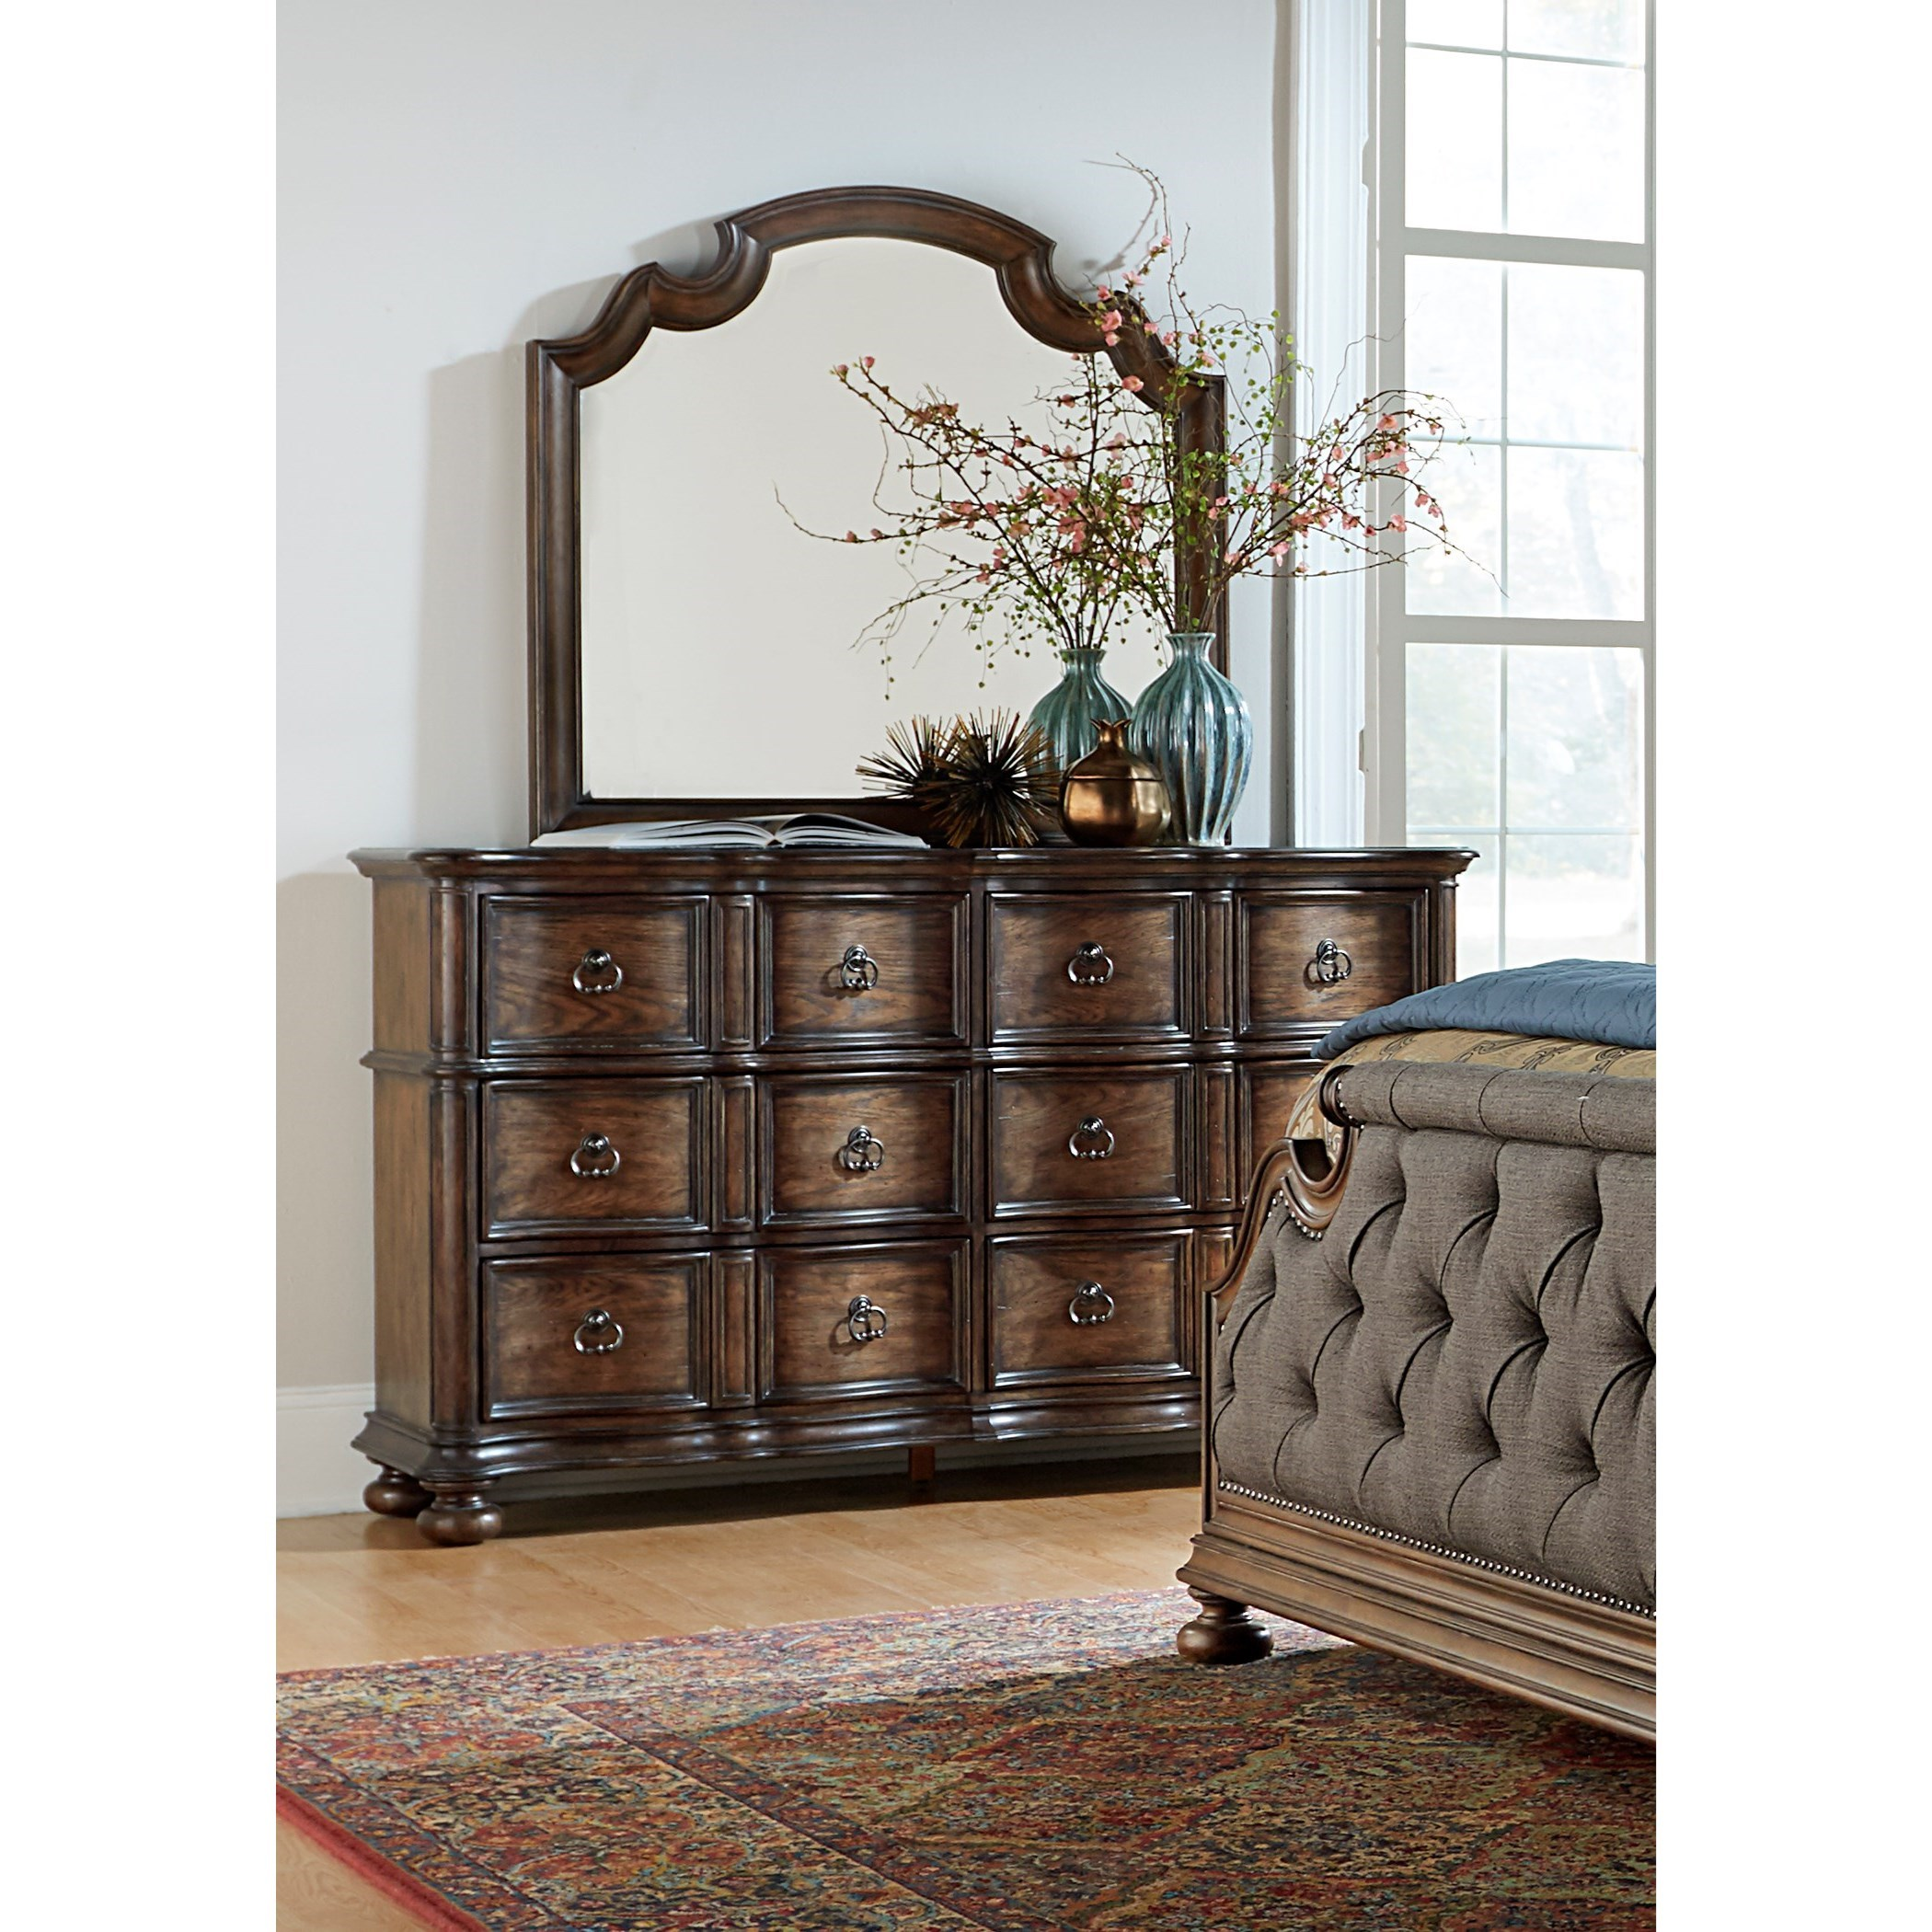 room dining amp furniture waters group ideas lovely reviews la new brilliant by for casual mattress center liberty of